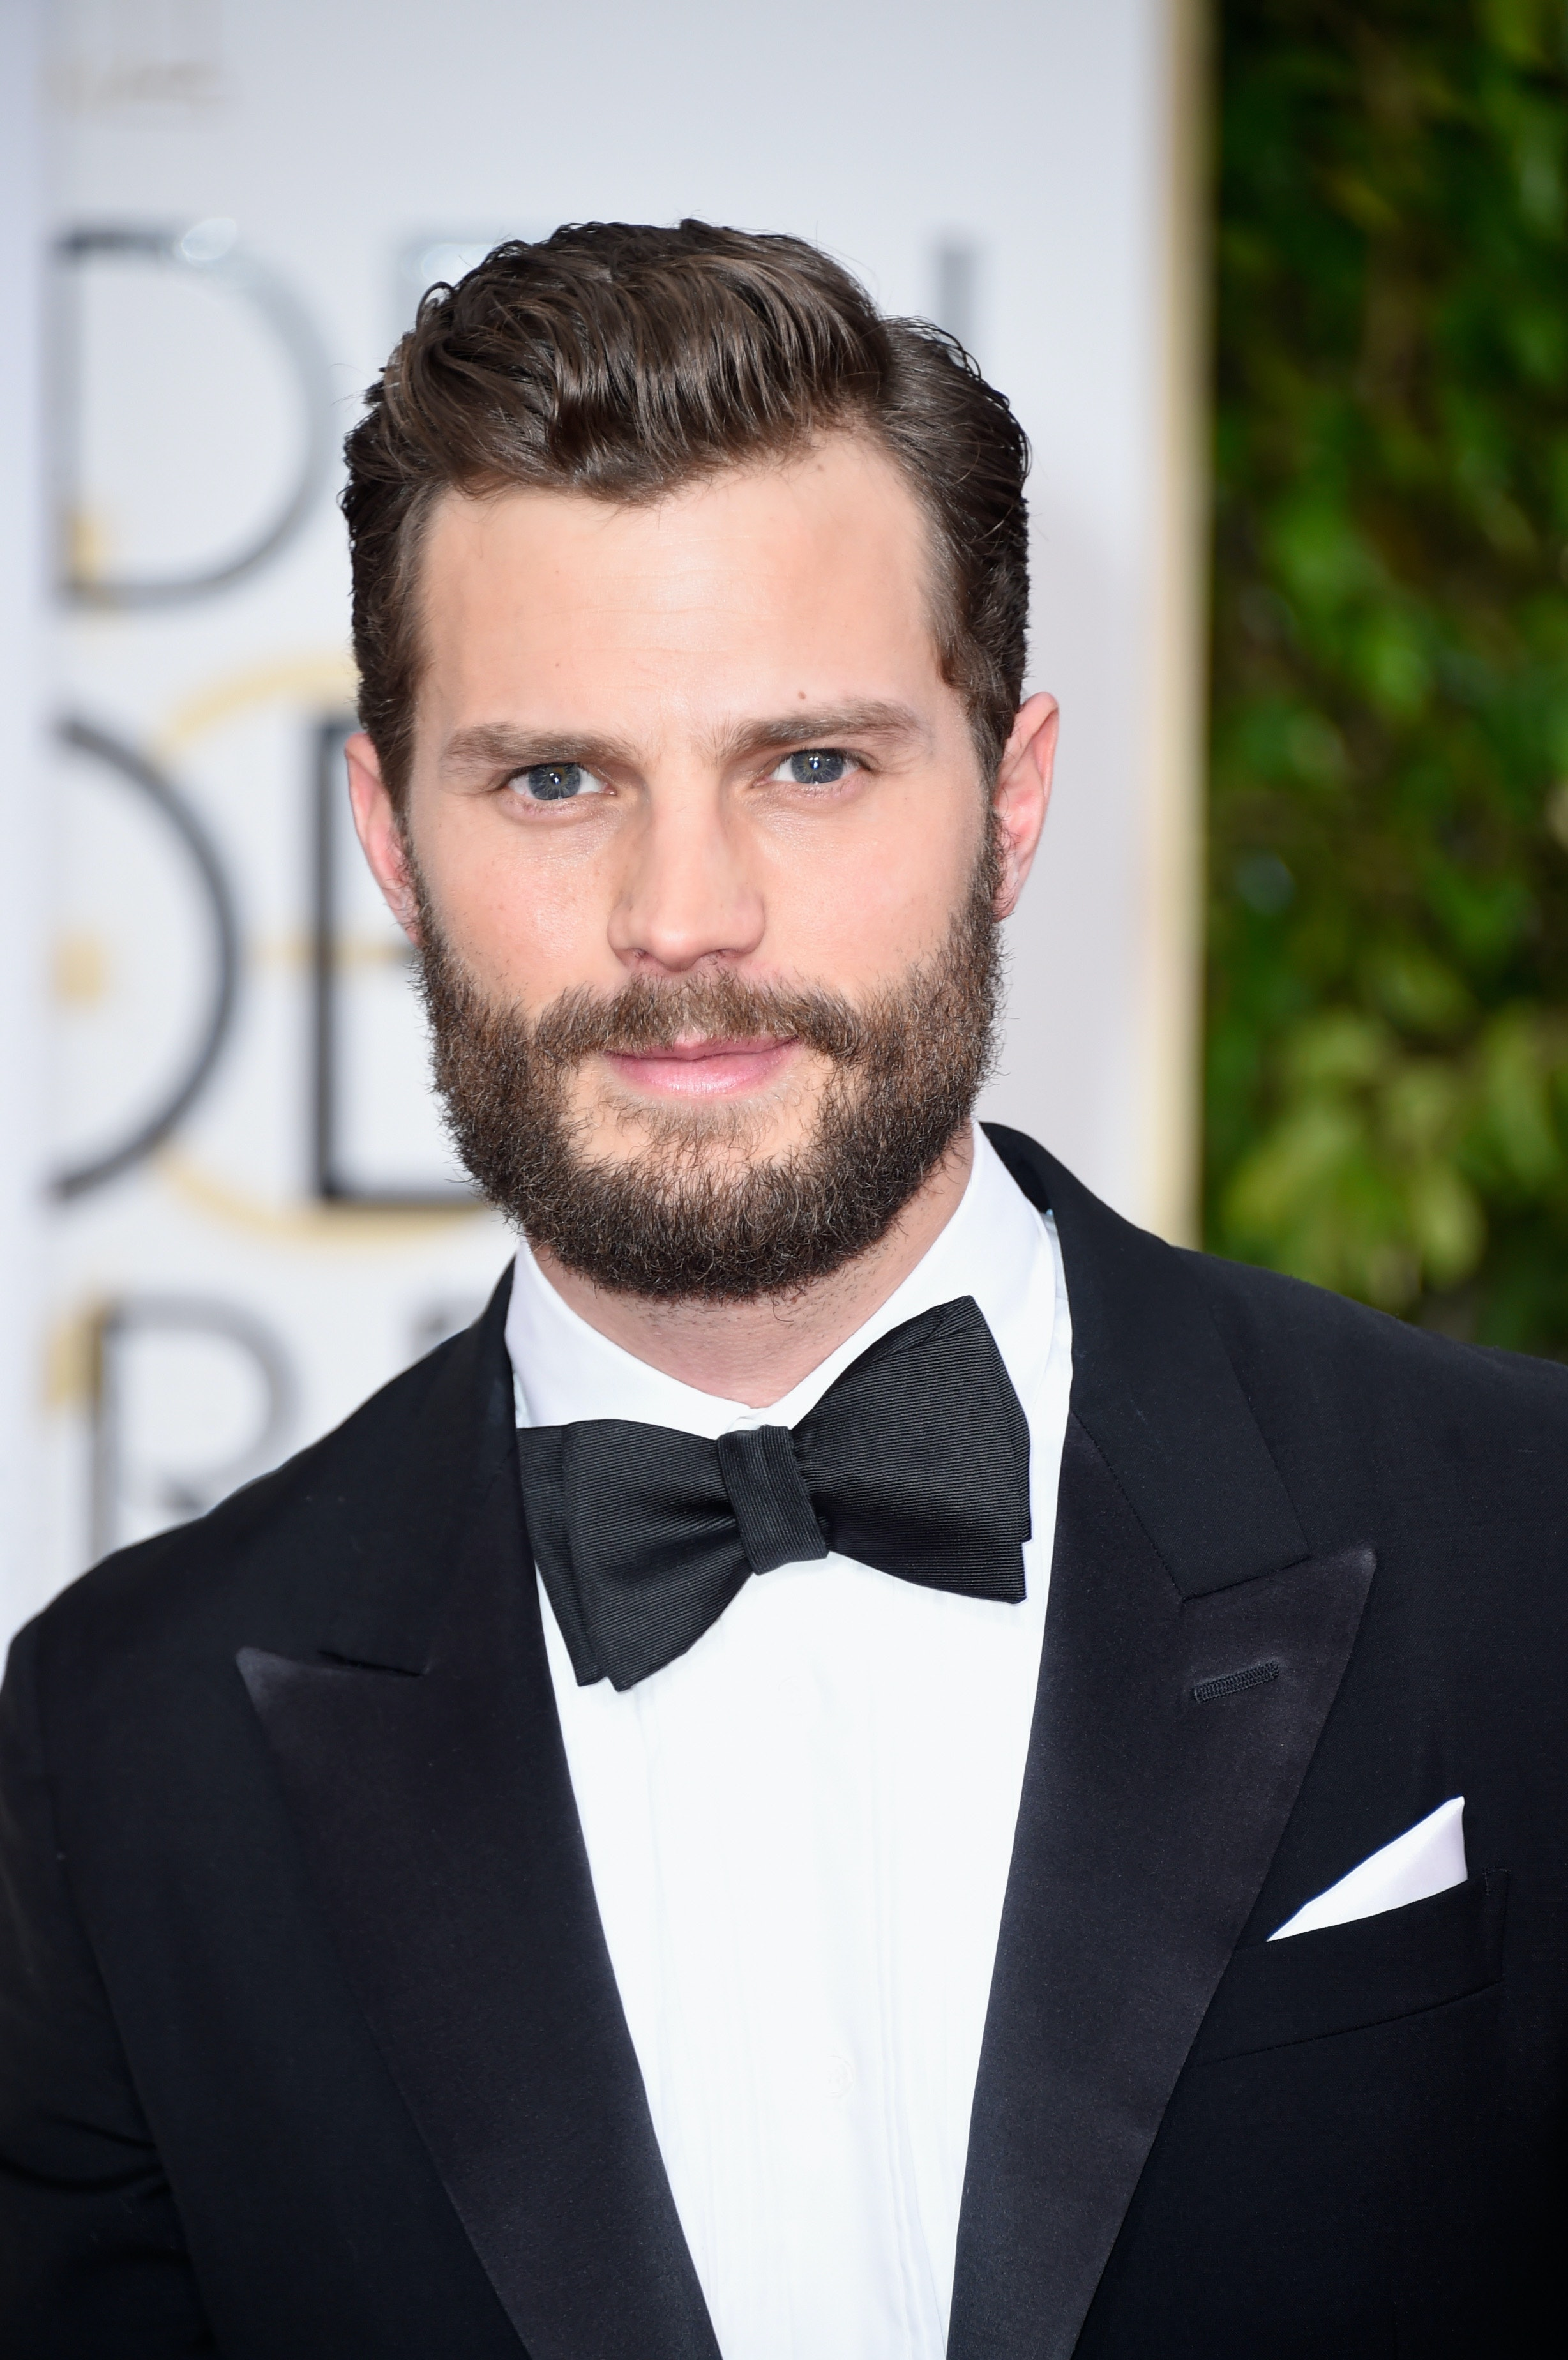 MORE: Jamie Dornan Will Play Christian Grey In '50 Shades Of Grey' forecast